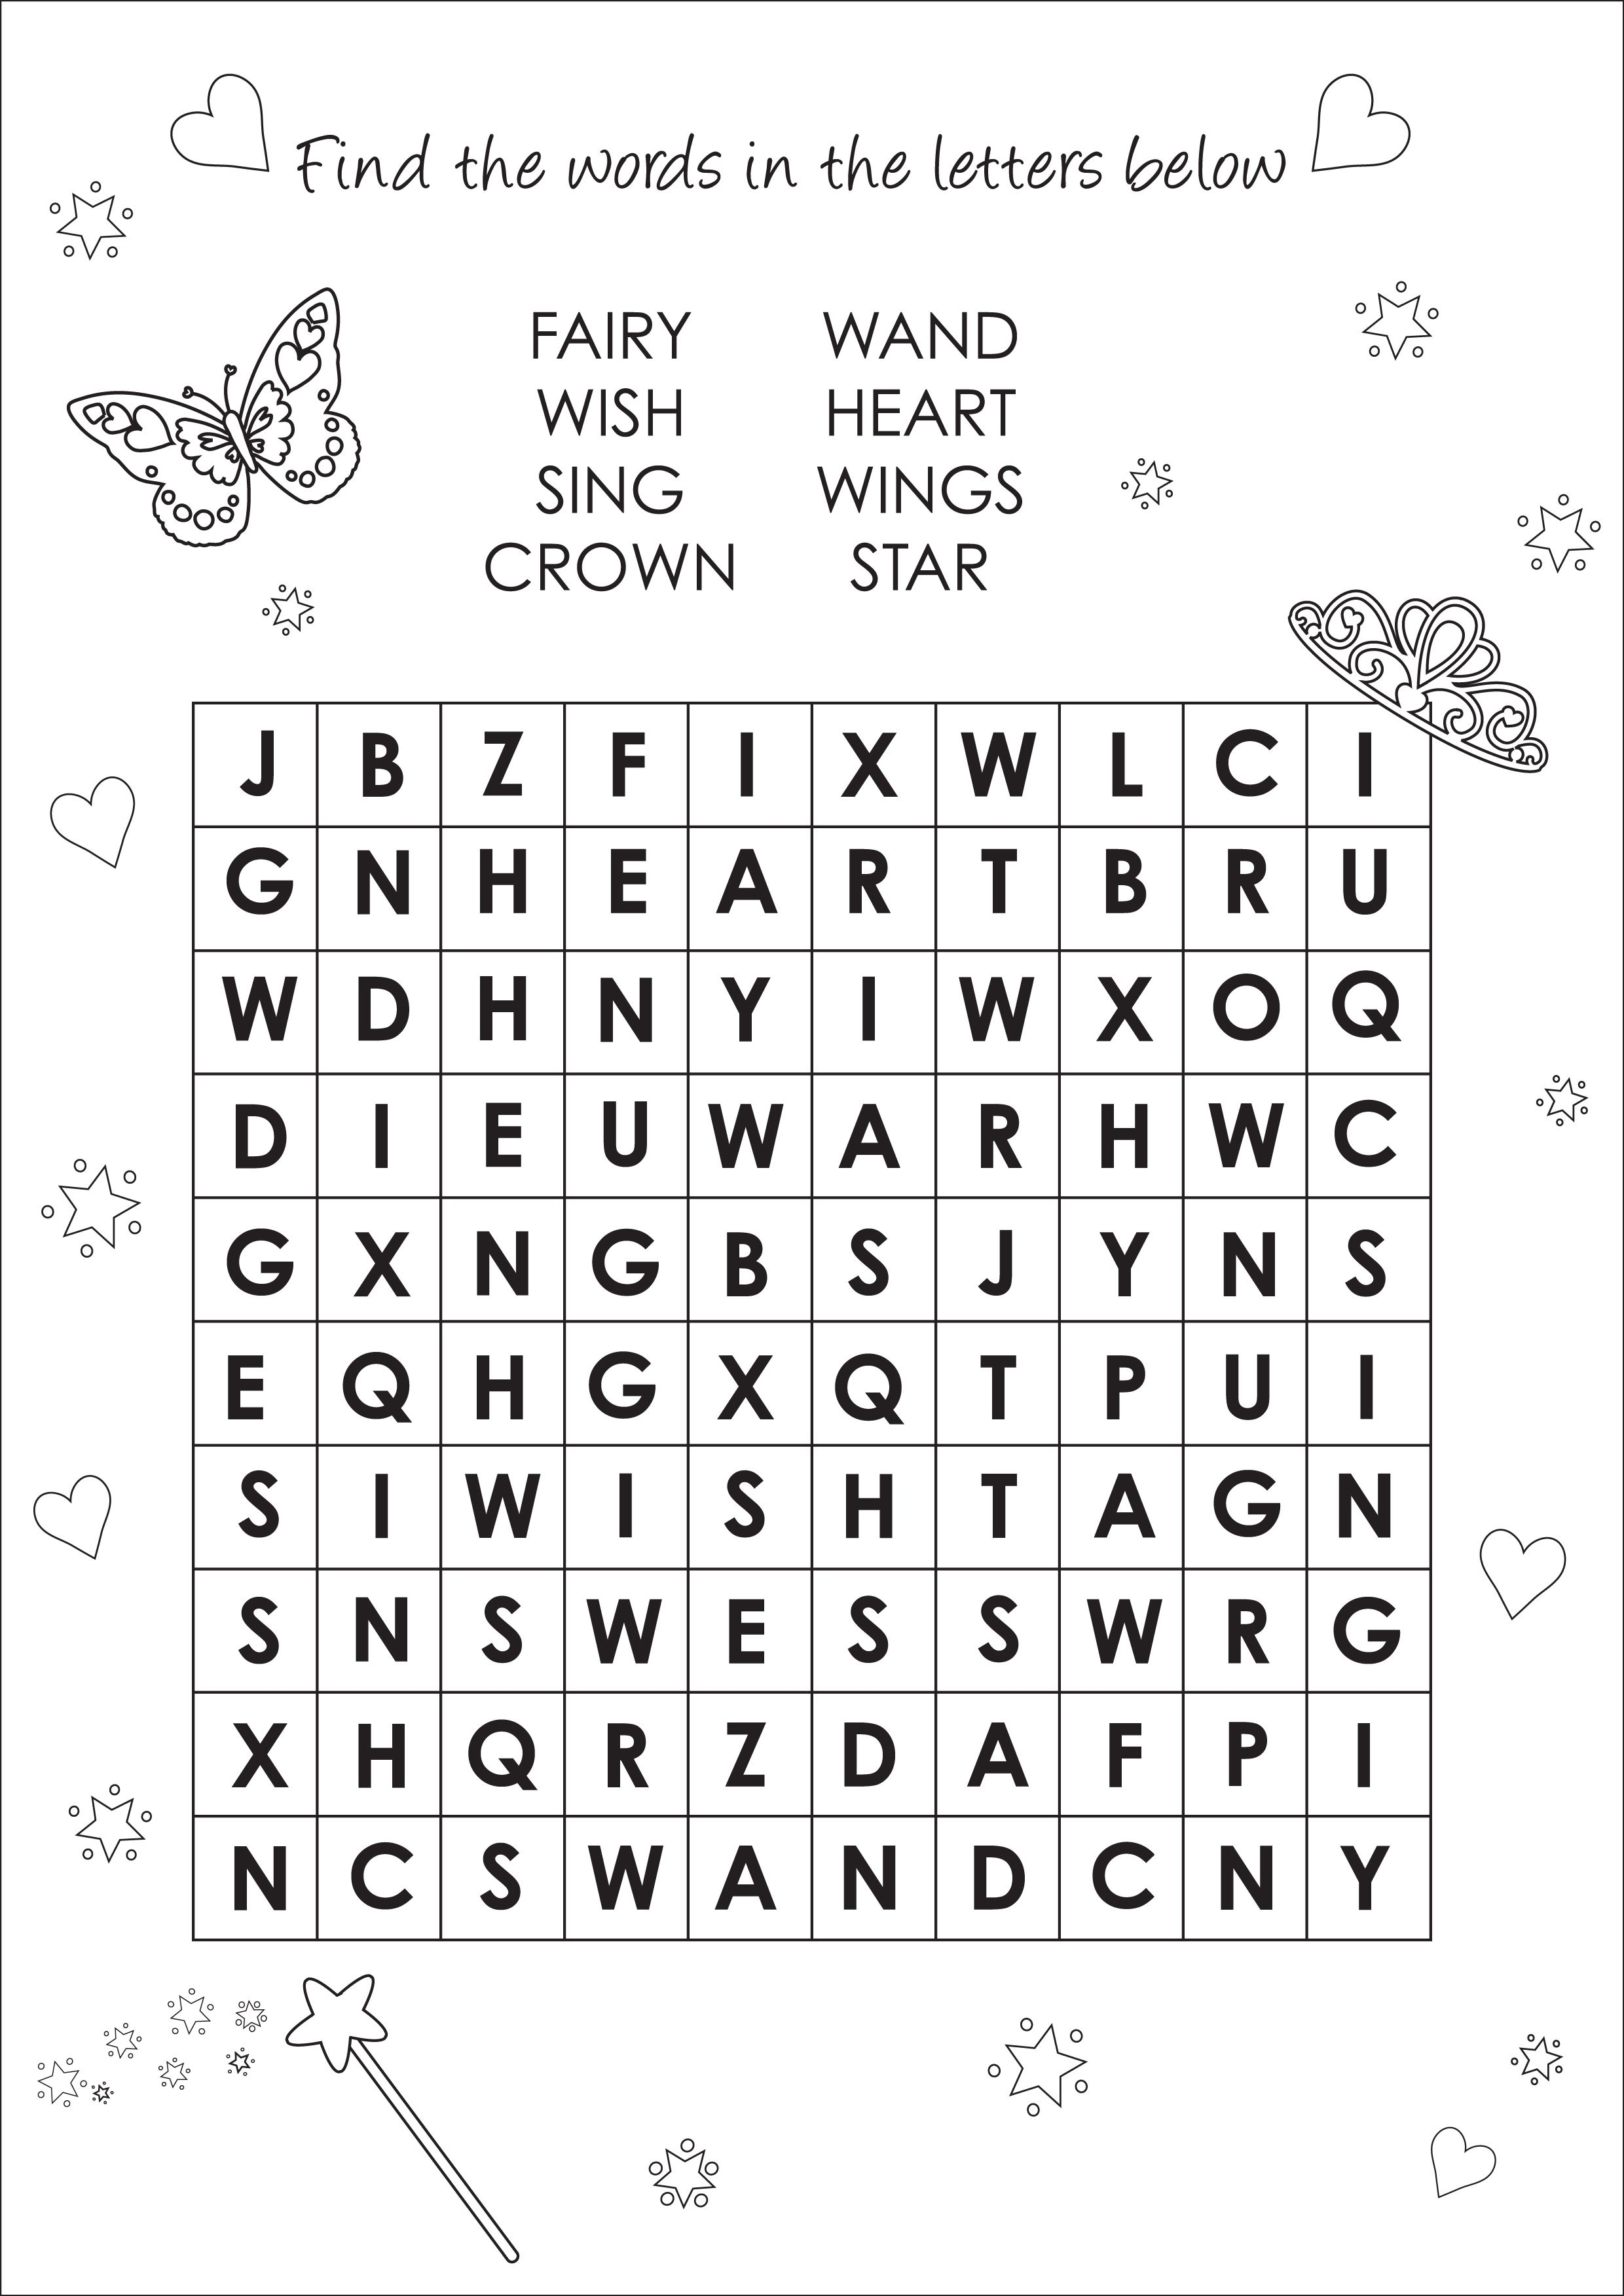 Activity Sheet Find A Word Activity Page By Pink Poppy Just Simply Download The Image Print